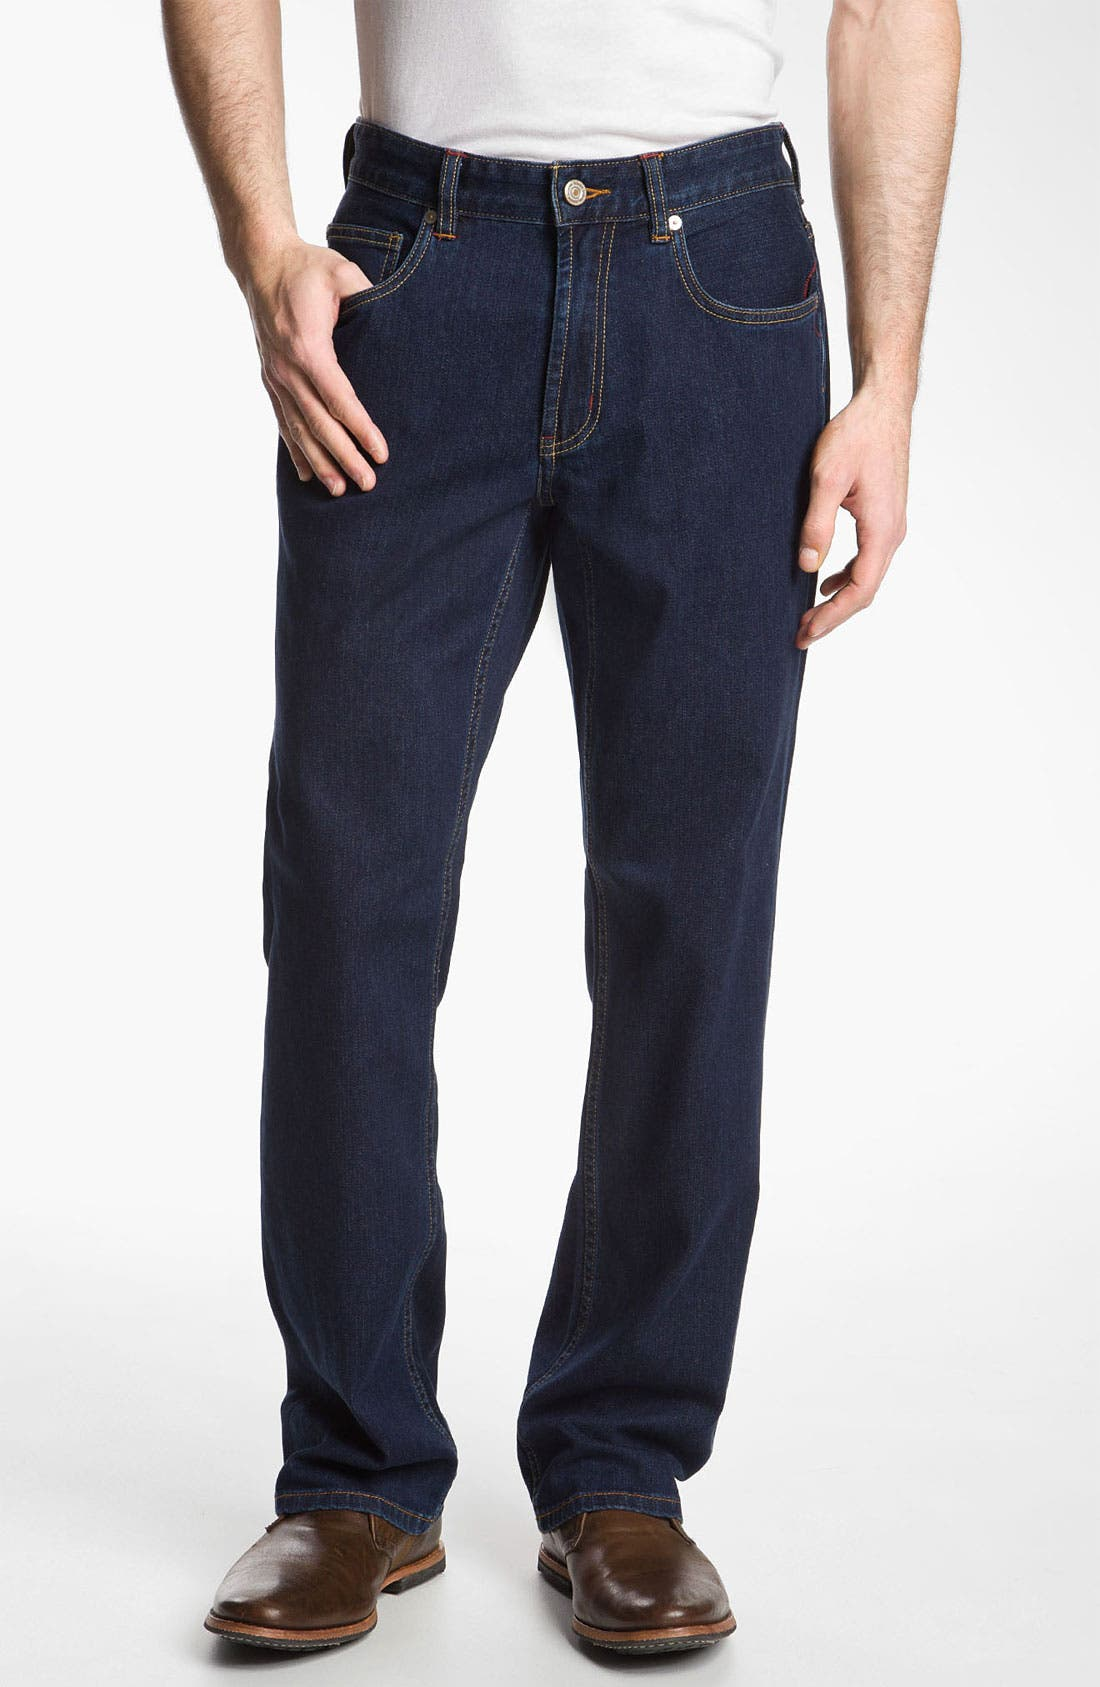 Alternate Image 1 Selected - Tommy Bahama Denim 'Original Cooper' Jeans (New Rinse)